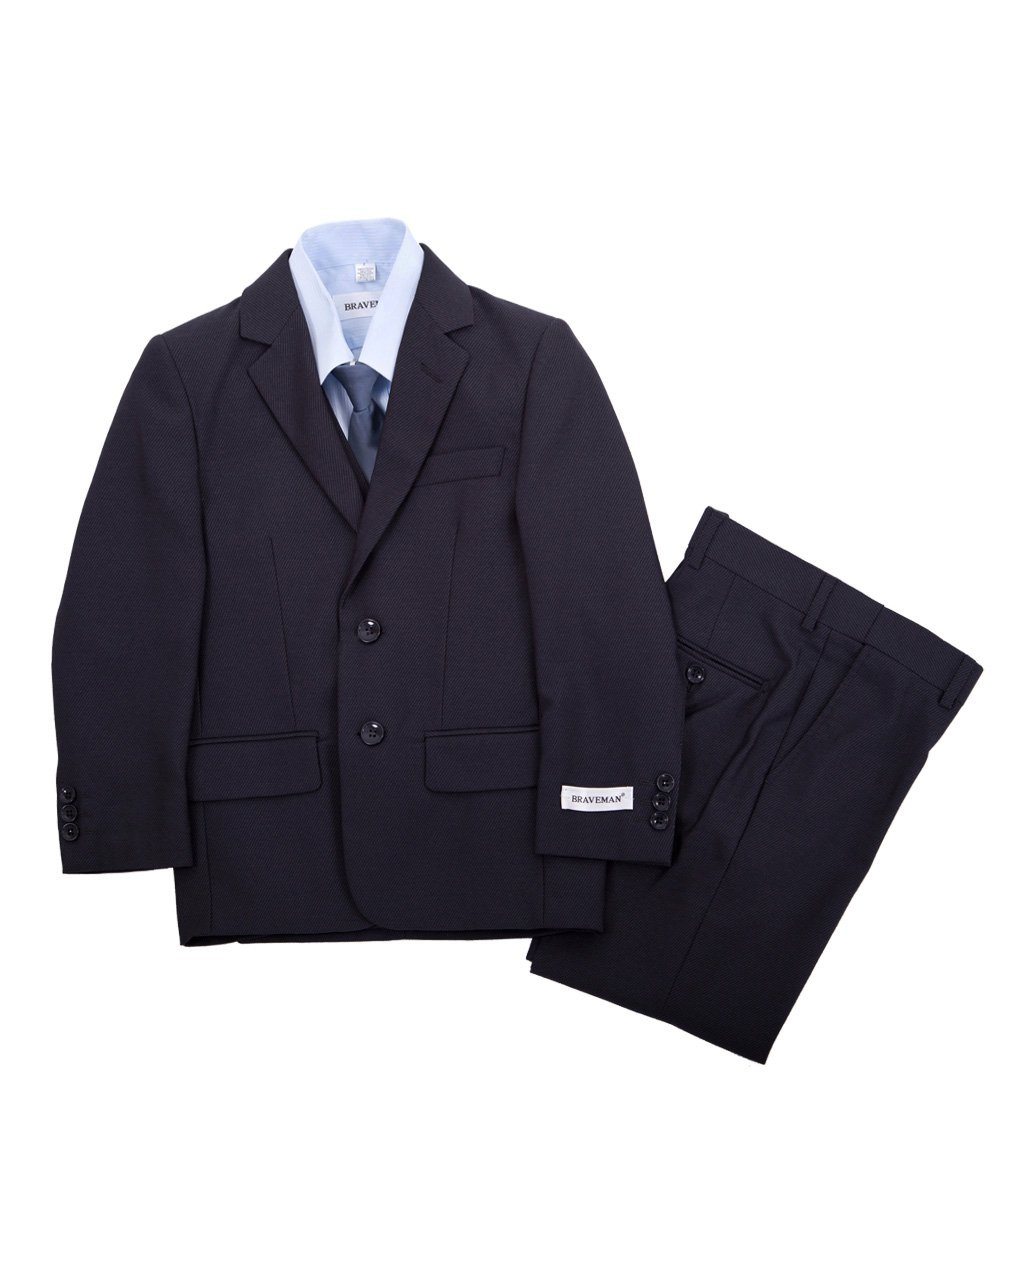 Navy Blue Boys Complete Classic Suit Set, Pleated Pants, Vest, Shirt, Tie & Jacket